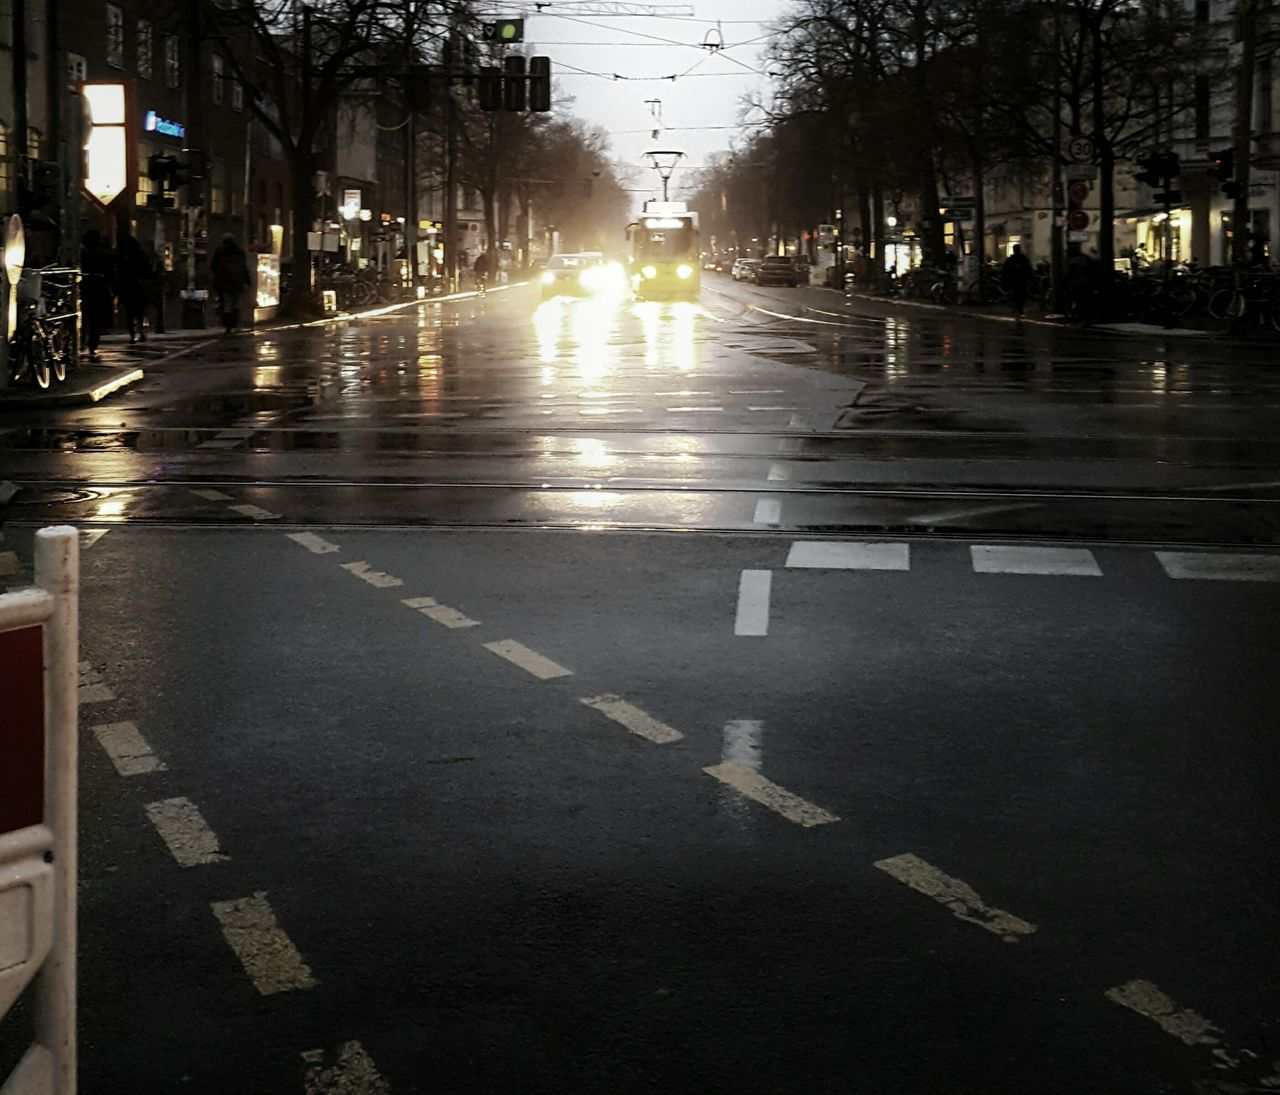 Coming home these days... Traffic Lights City Tram Cable Car Wet Road Wet Ground Wintertime Cold Day Rainy Days Rainy Weather City Lights Street Lights Coming Home Traffic Street Car Transportation Outdoors Wet Water Road Building Exterior No People Architecture Embrace Urban Life